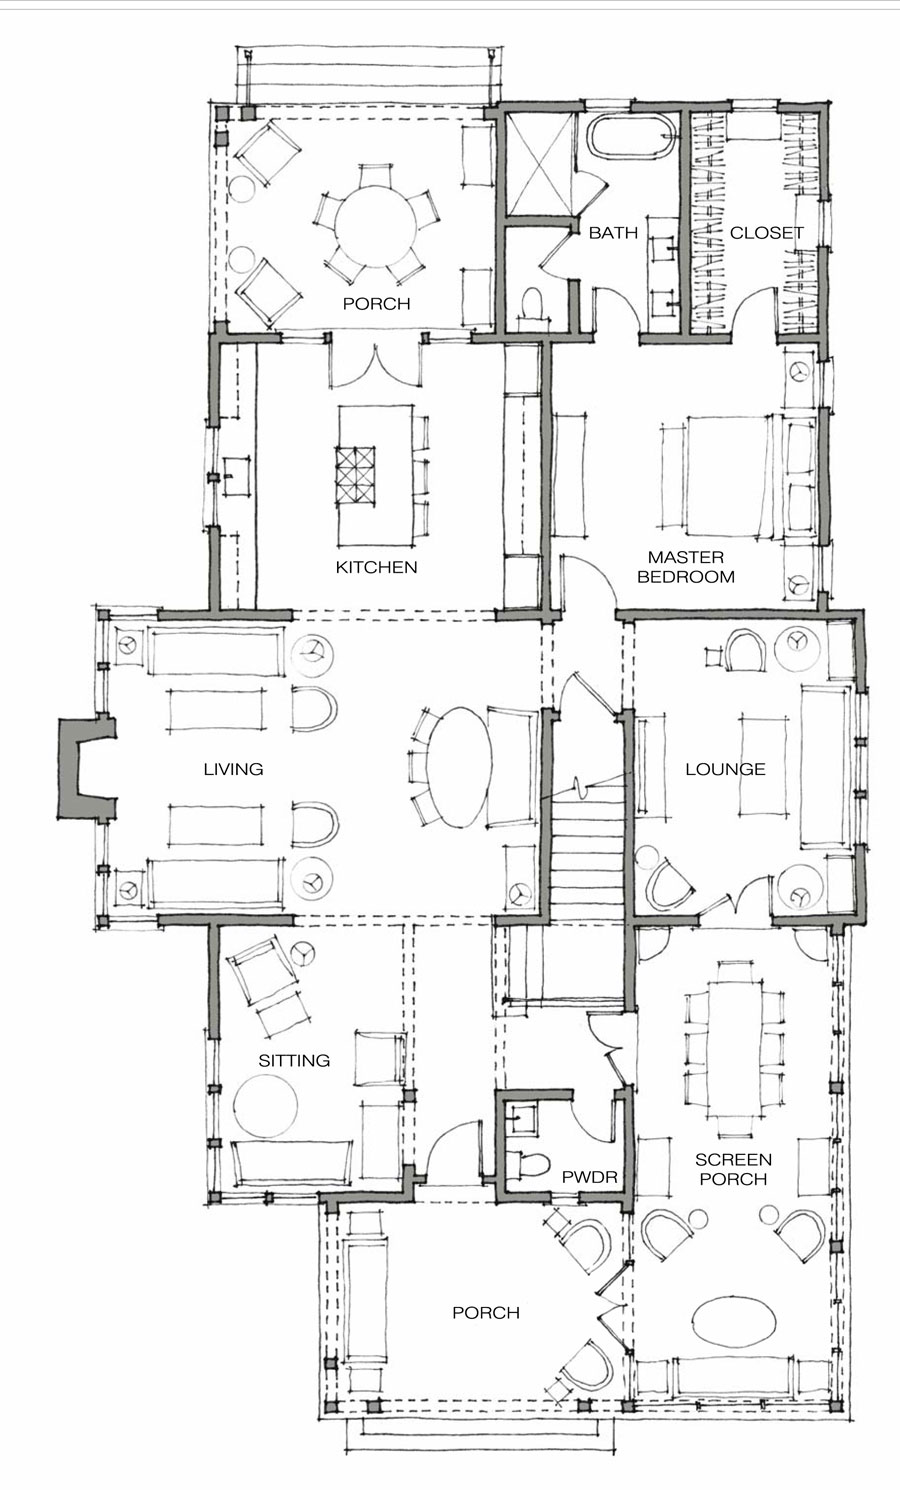 Montana house plans 28 images luckyman ranch house for Cost of building a house in montana